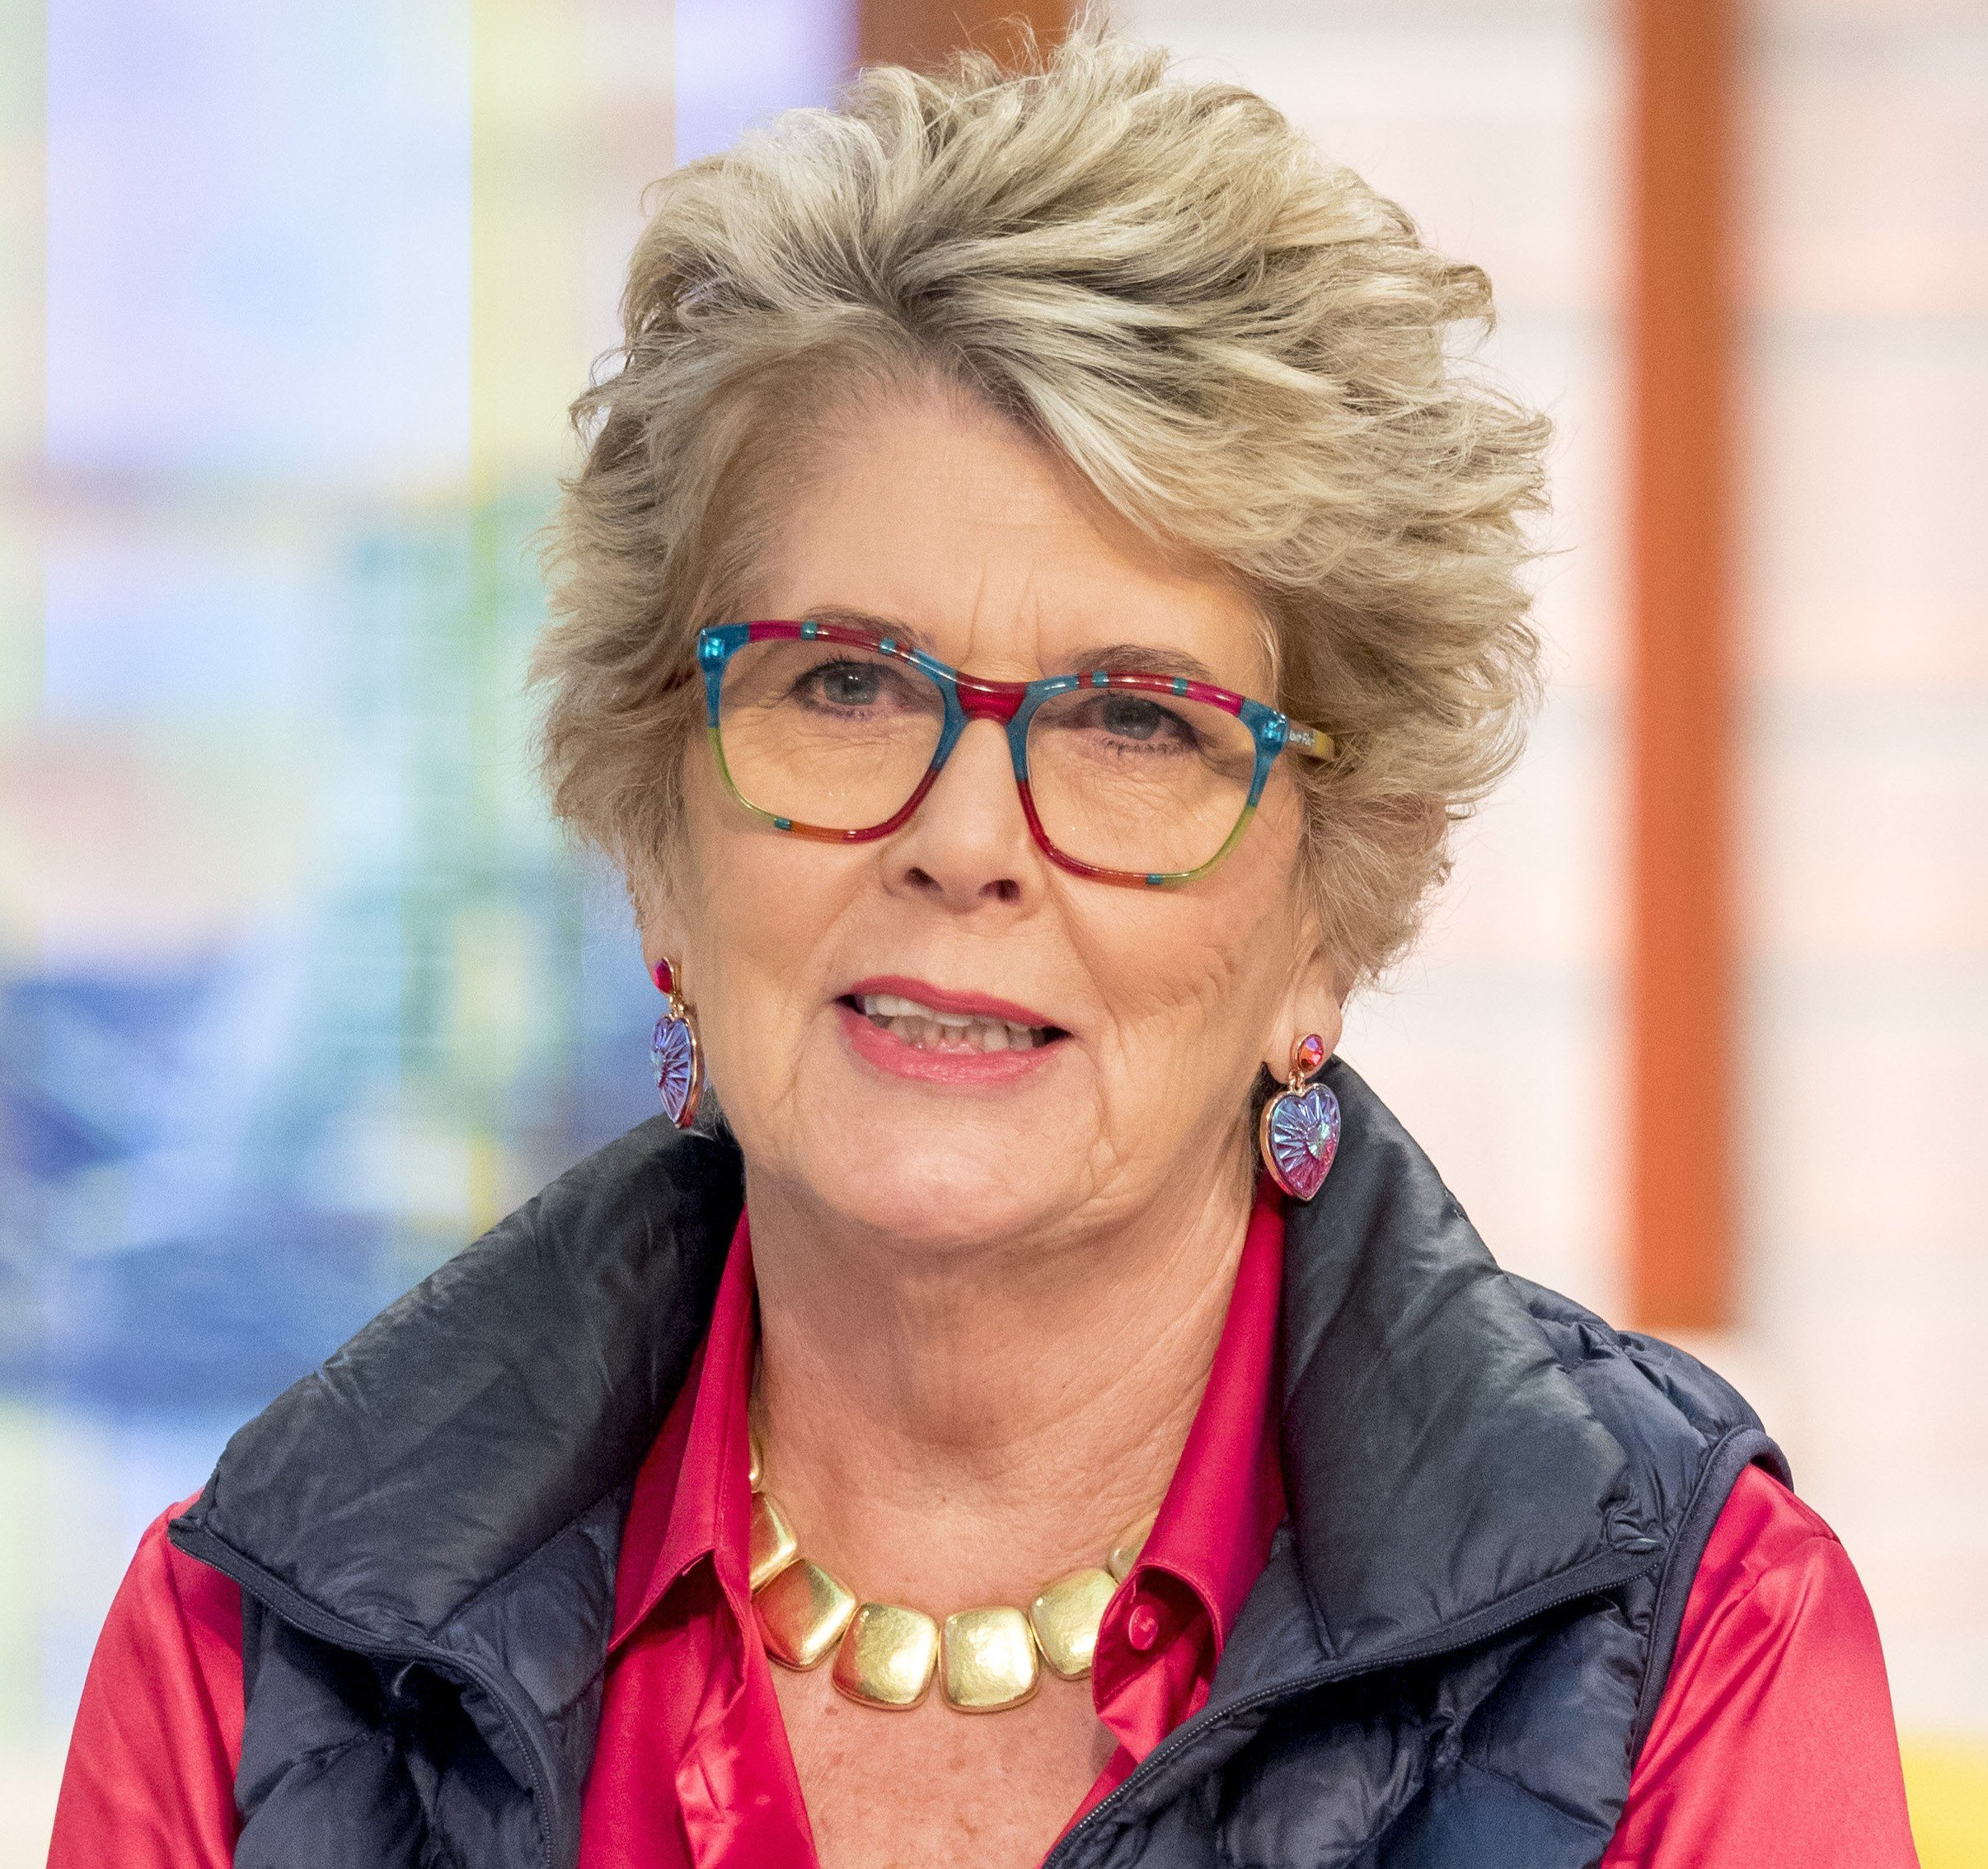 prue leith 1 26 Things You Didn't Know About Bake Off's Prue Leith